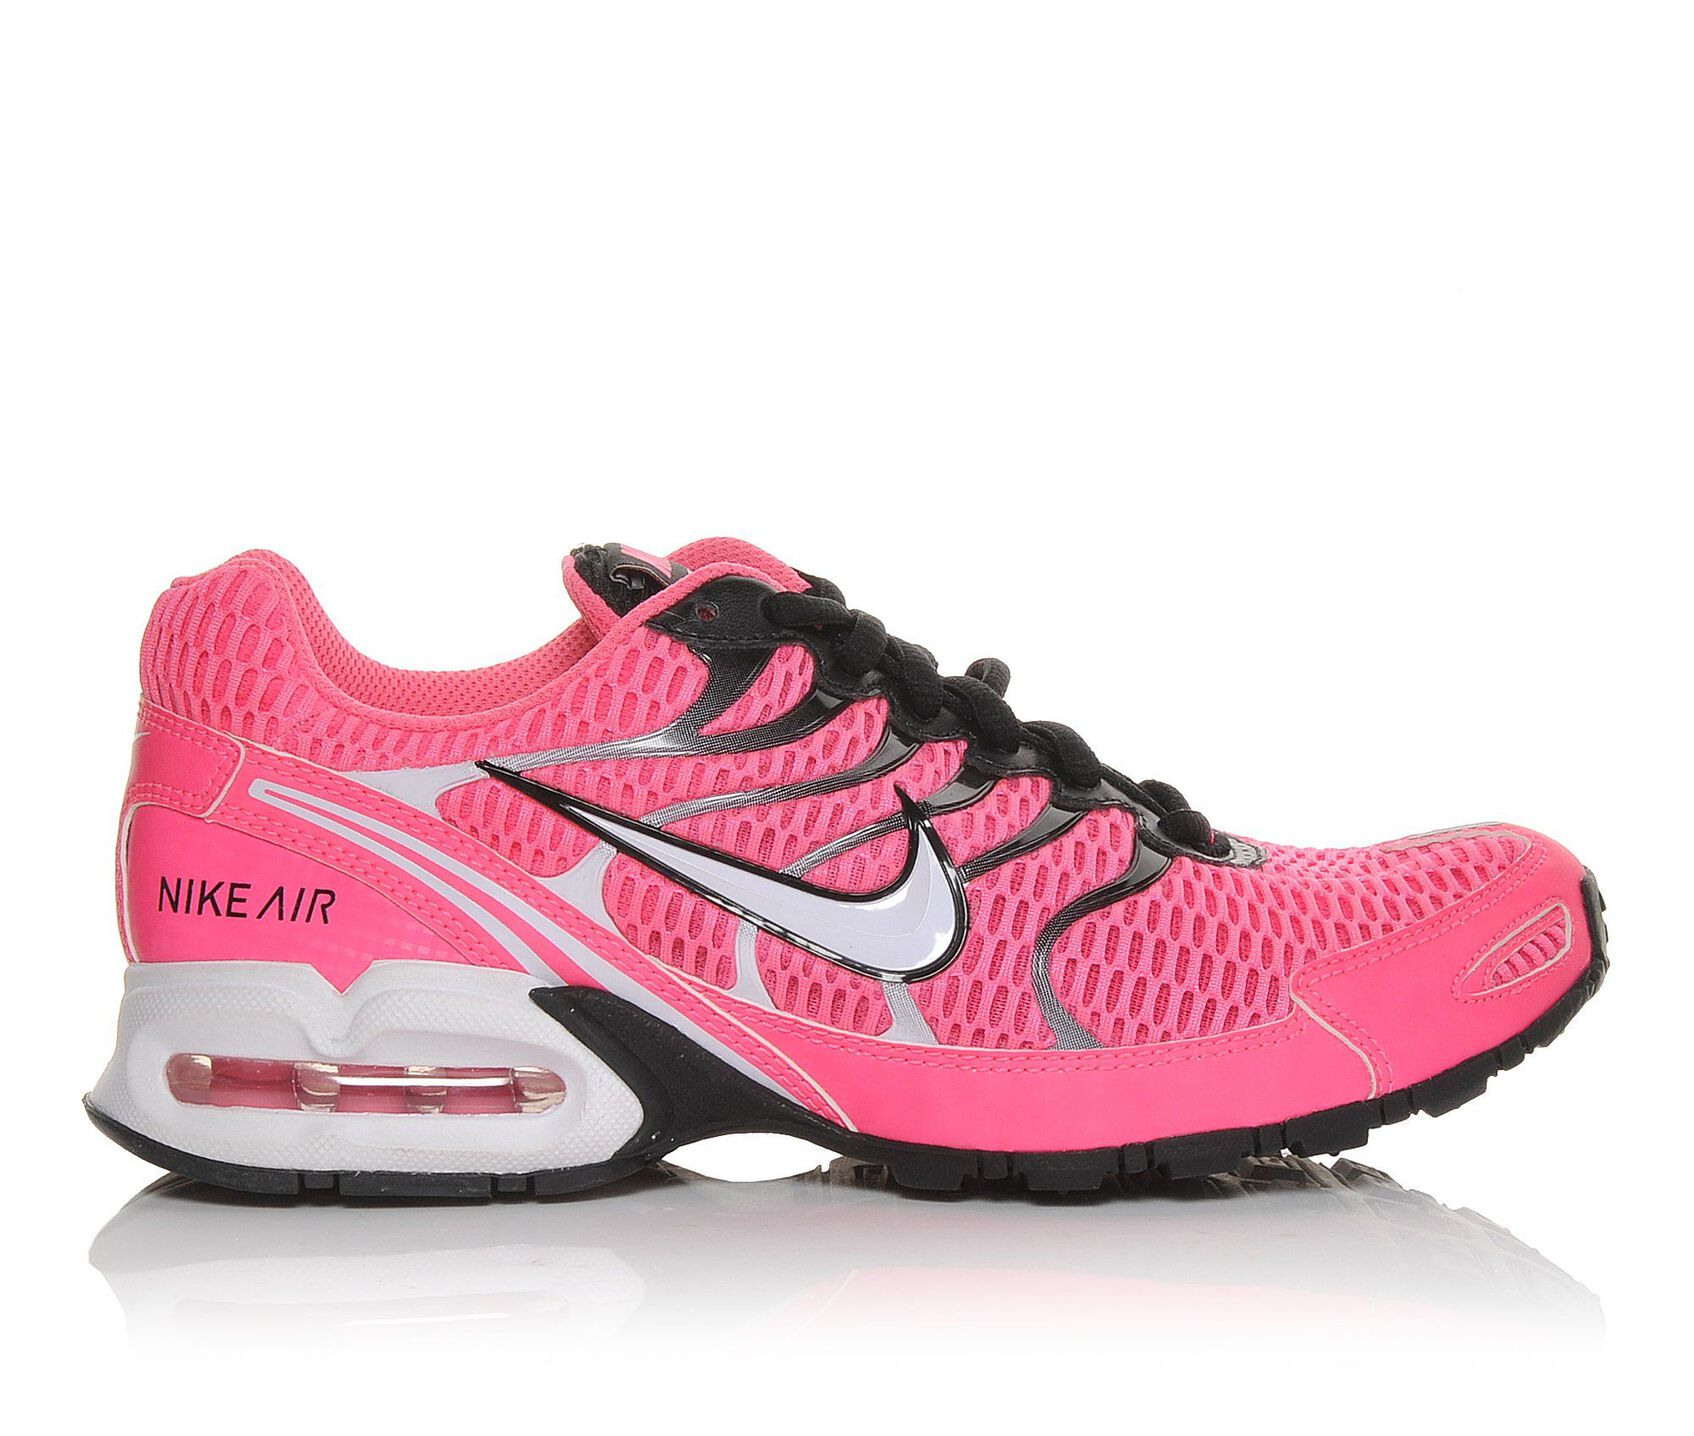 online store dd776 d1977 ... Nike Air Max Torch 4 Running Shoes. Previous